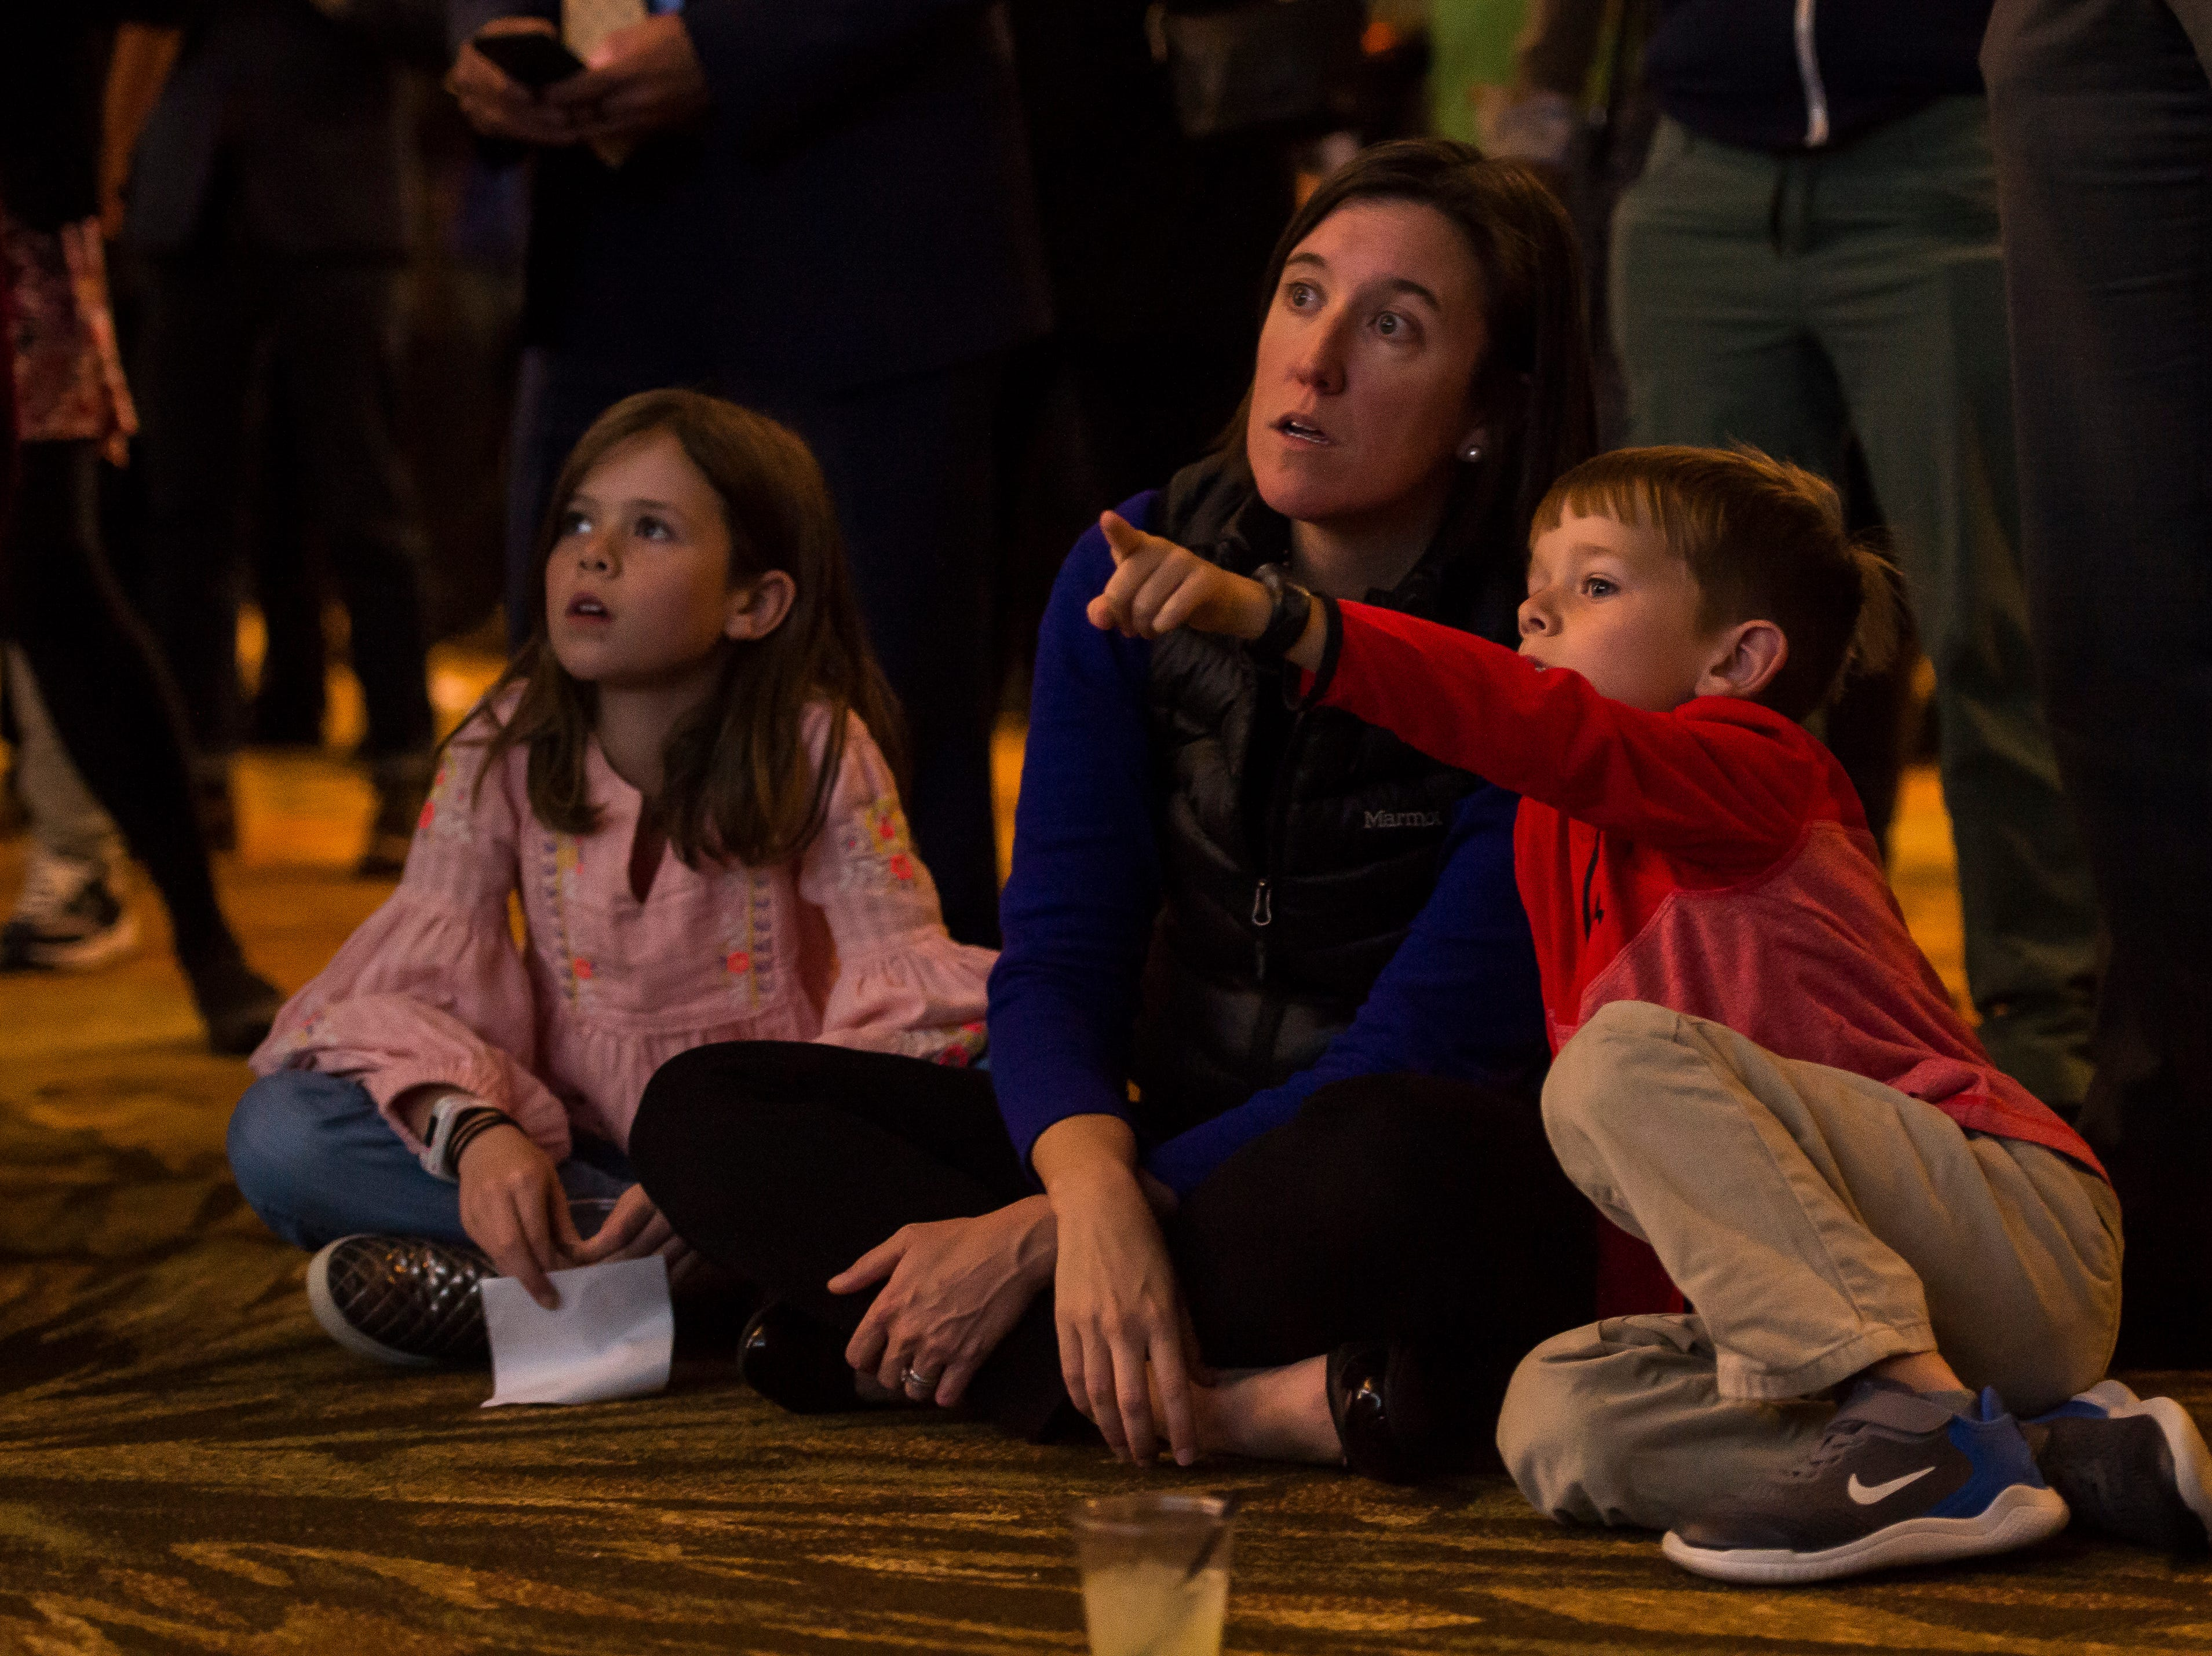 Cody Belly watches election results on a projection screen with her daughter Liza, 8, and son Cooper, 6, at Democratic candidate for Colorado governor Jared Polis' election watch party on Tuesday, Nov. 6, 2018, at the Westin Denver Downtown hotel in Denver, Colo.